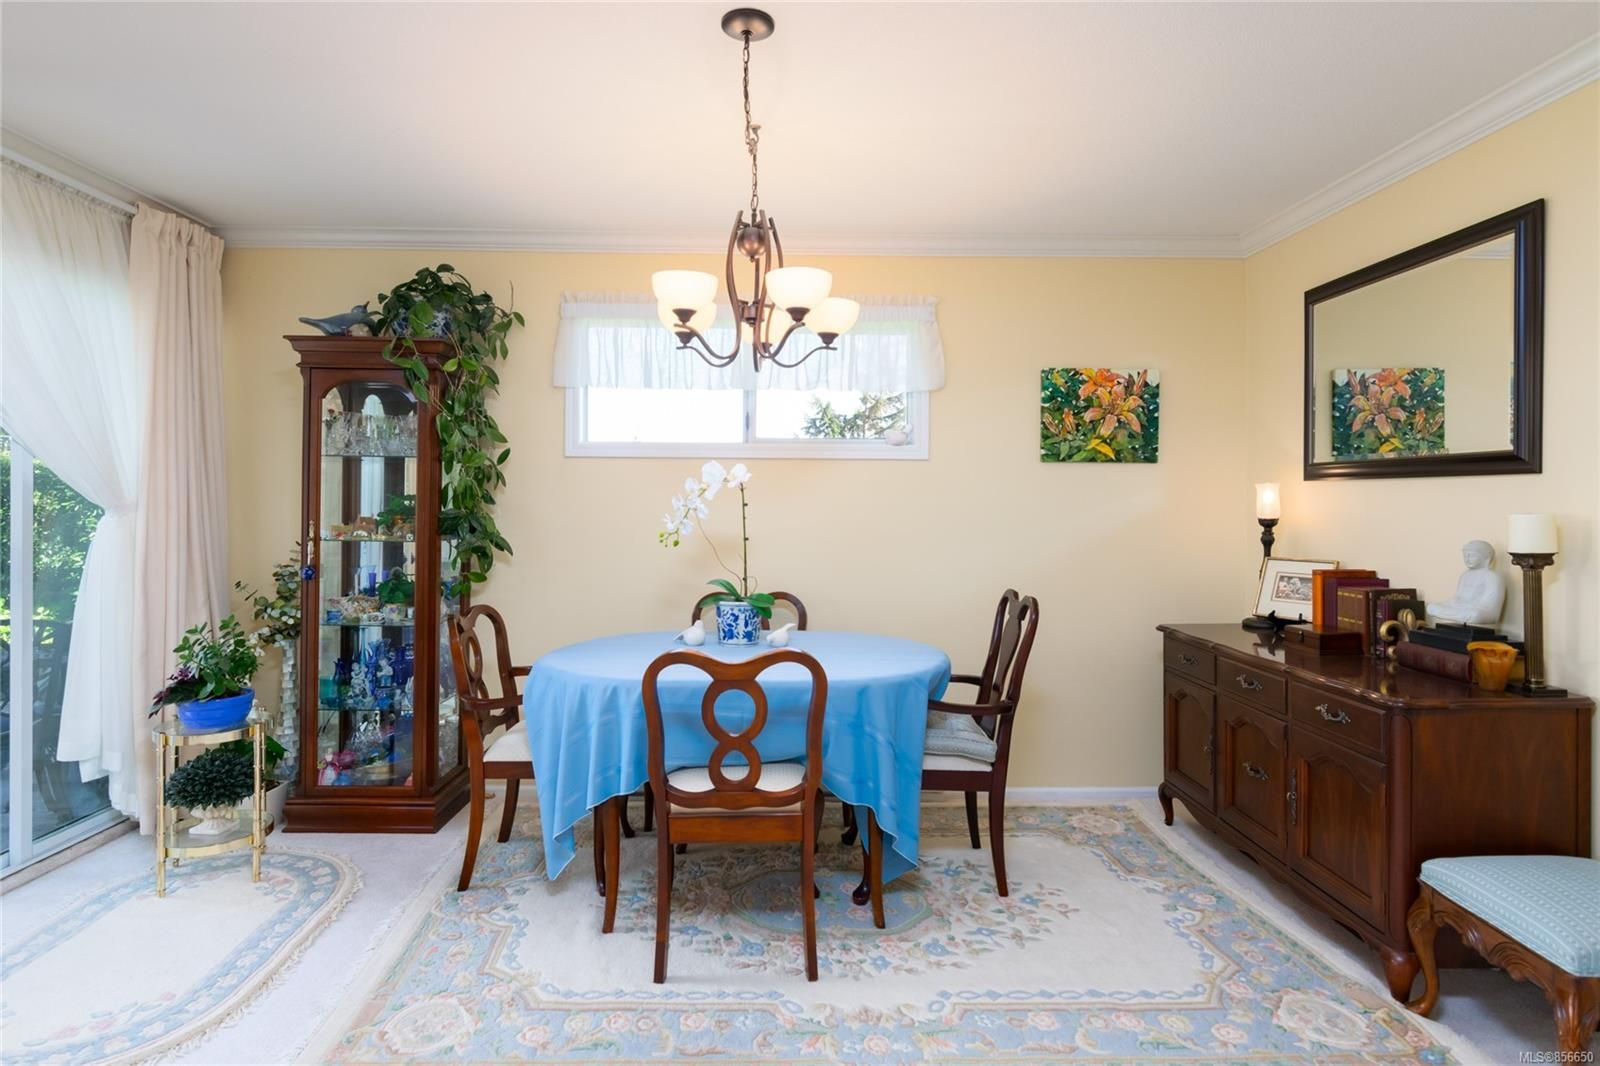 Photo 5: Photos: 4 305 Blower Rd in : PQ Parksville Row/Townhouse for sale (Parksville/Qualicum)  : MLS®# 856650